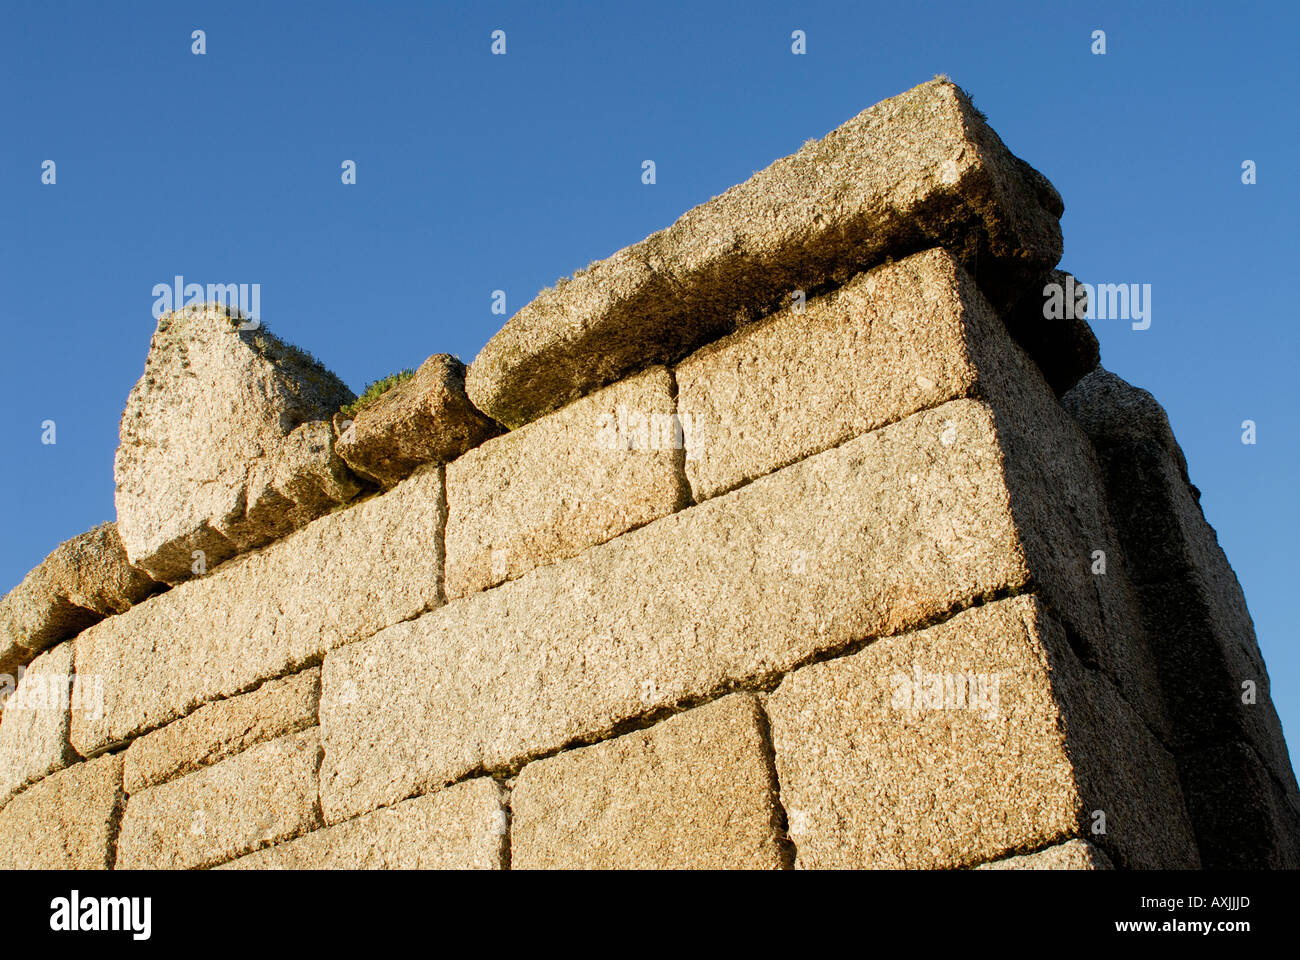 The harbour walls at Hugh Town are built from blocks of granite Hugh Town St Mary s Isles of Scilly UK 16 September 2006 - Stock Image